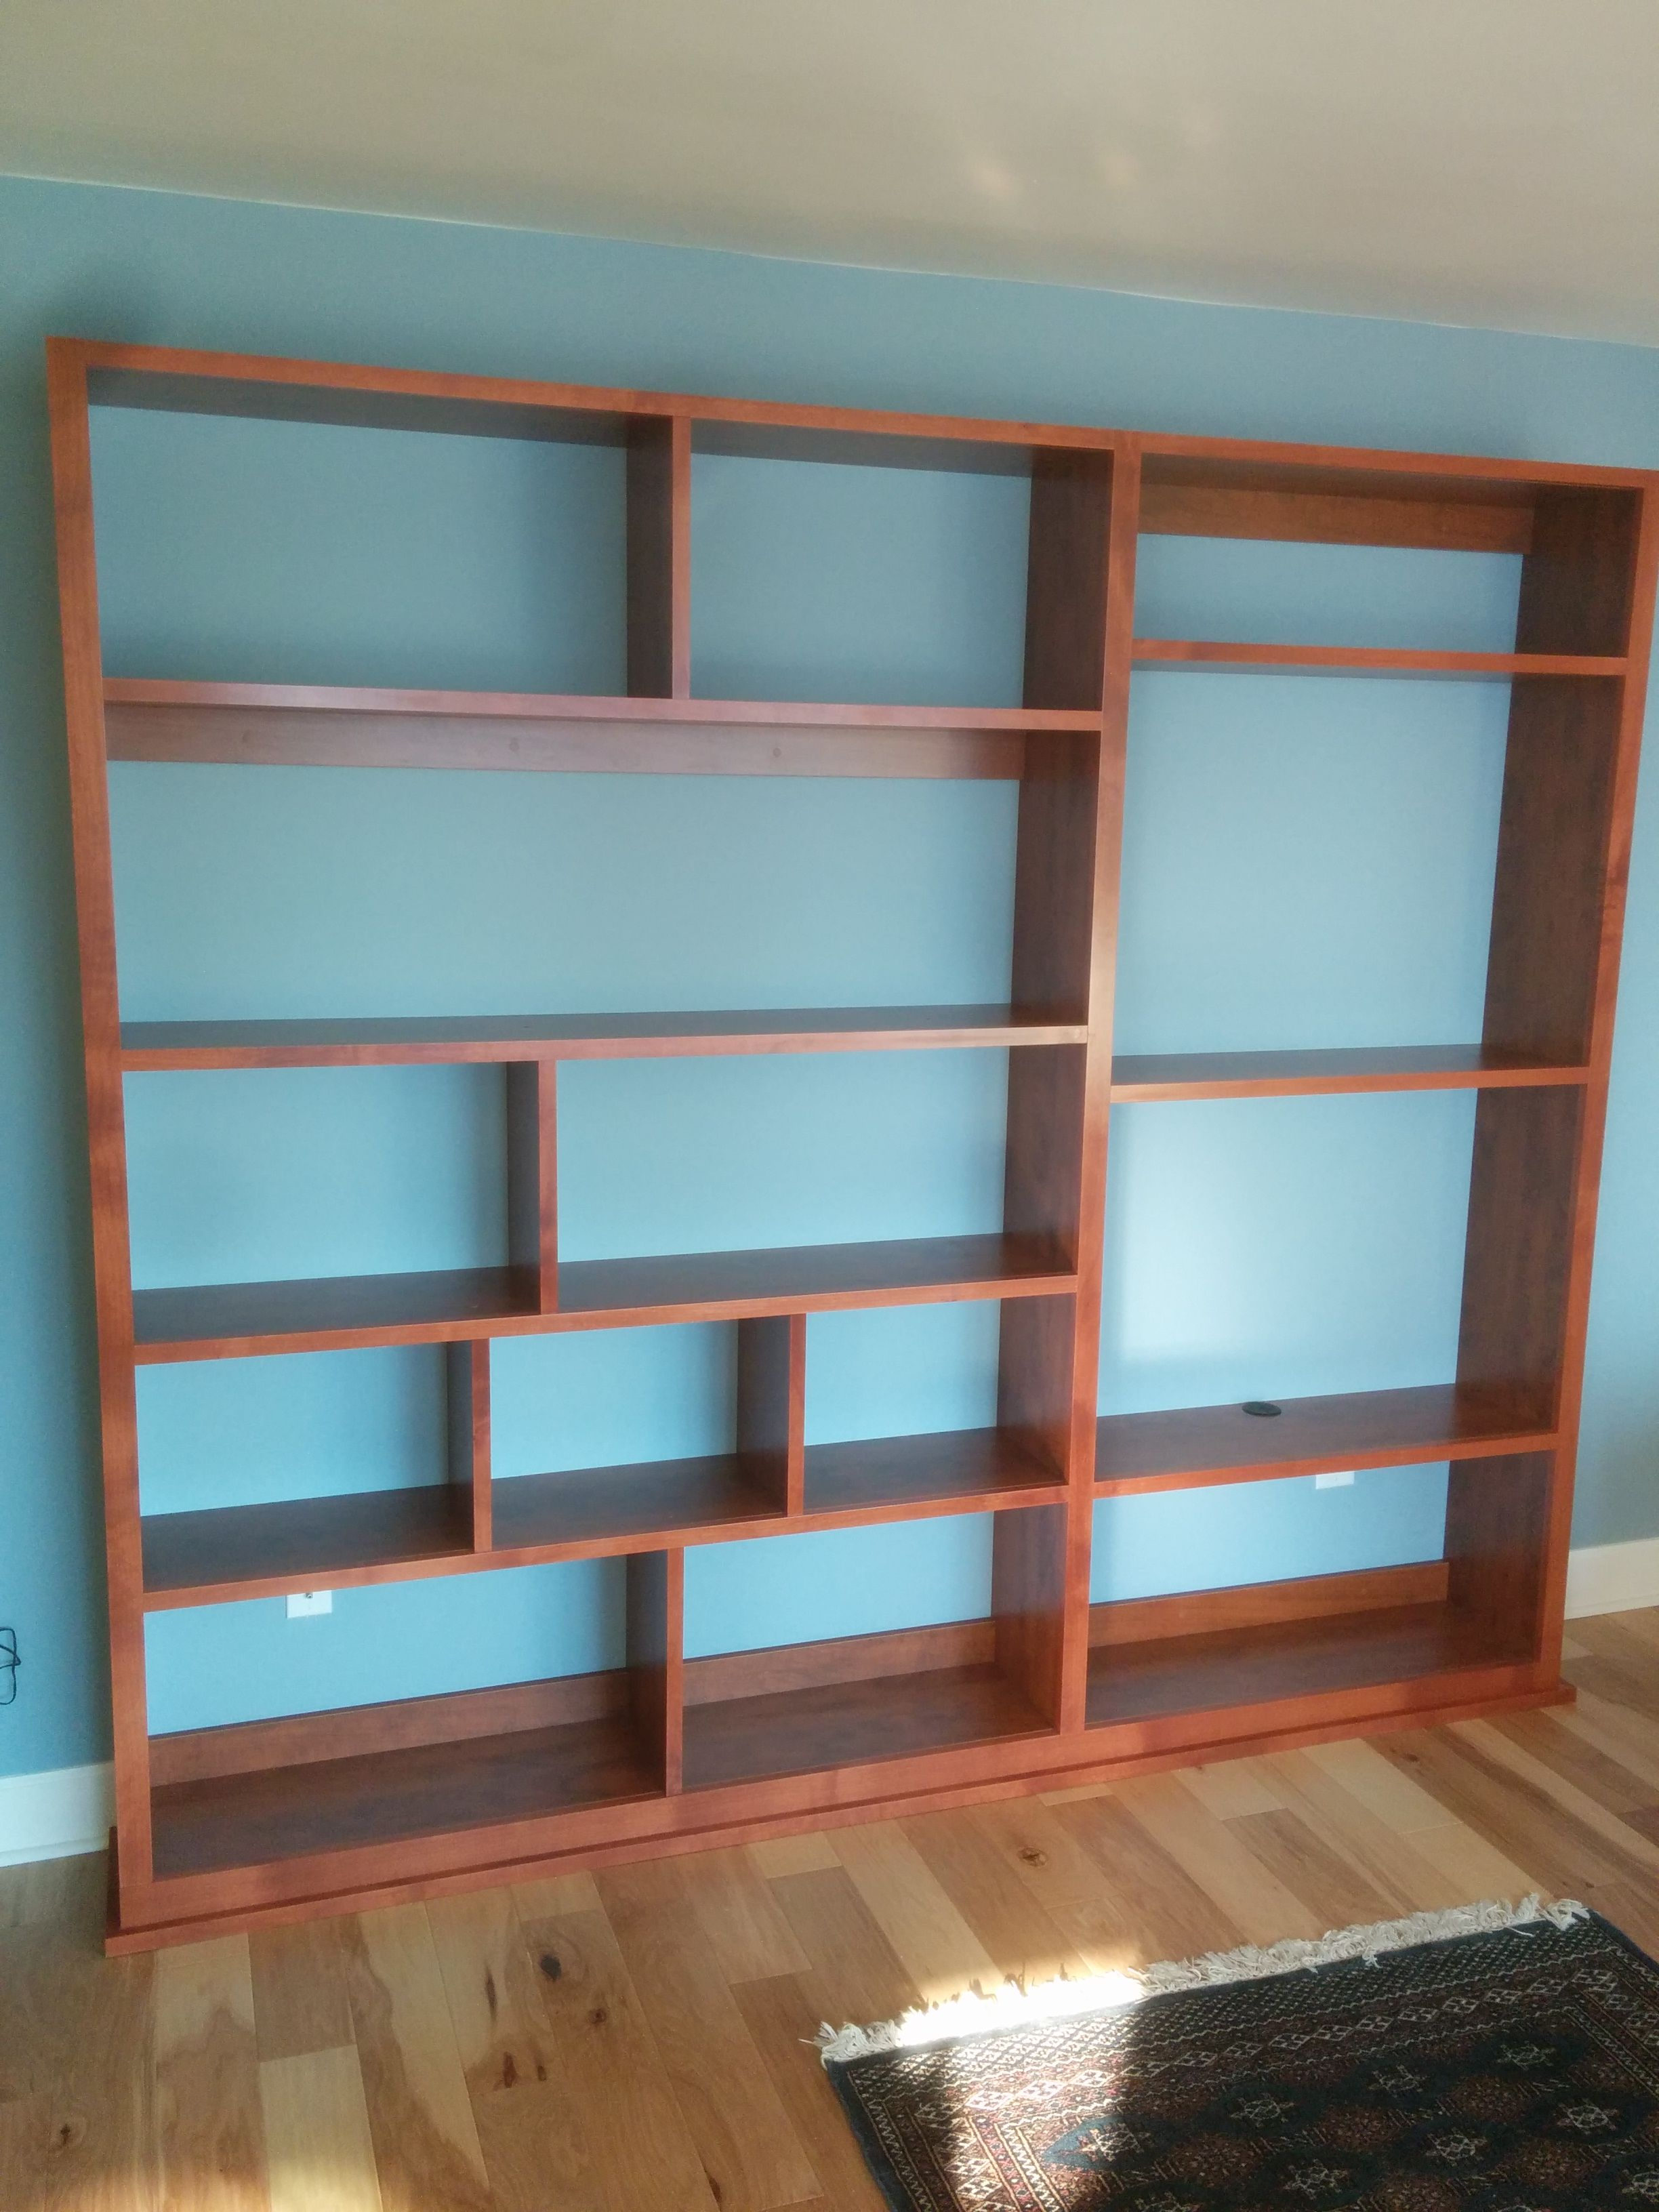 Offset Shelves For A Bookshelf, Display And Tv Stand